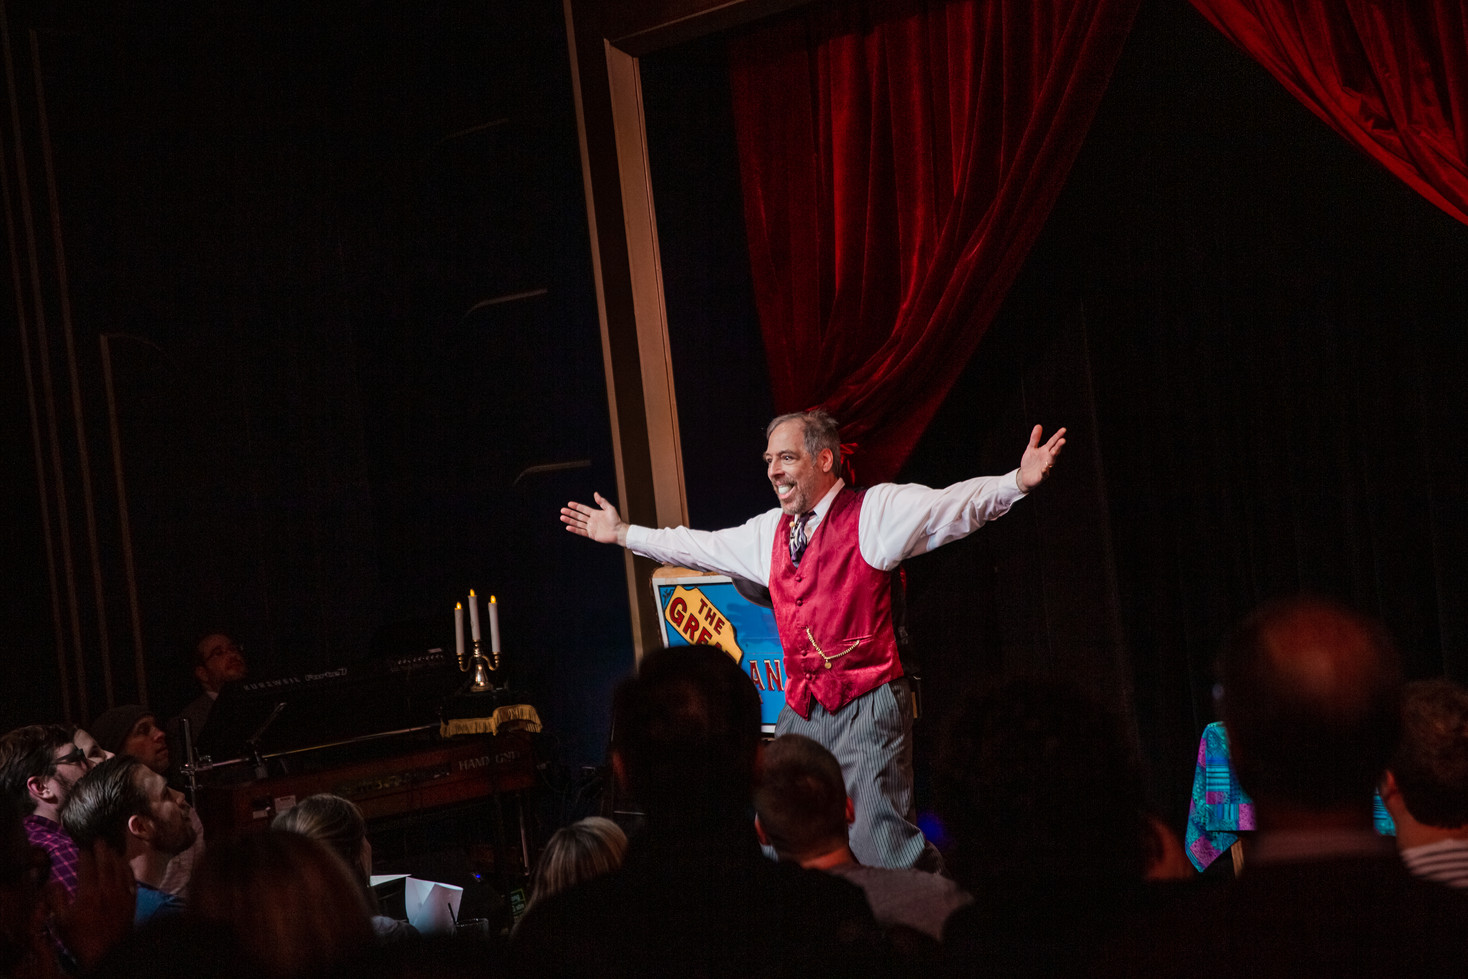 Chicago Magic Lounge Photography. Chicago Production Photos by Trainman Photography.